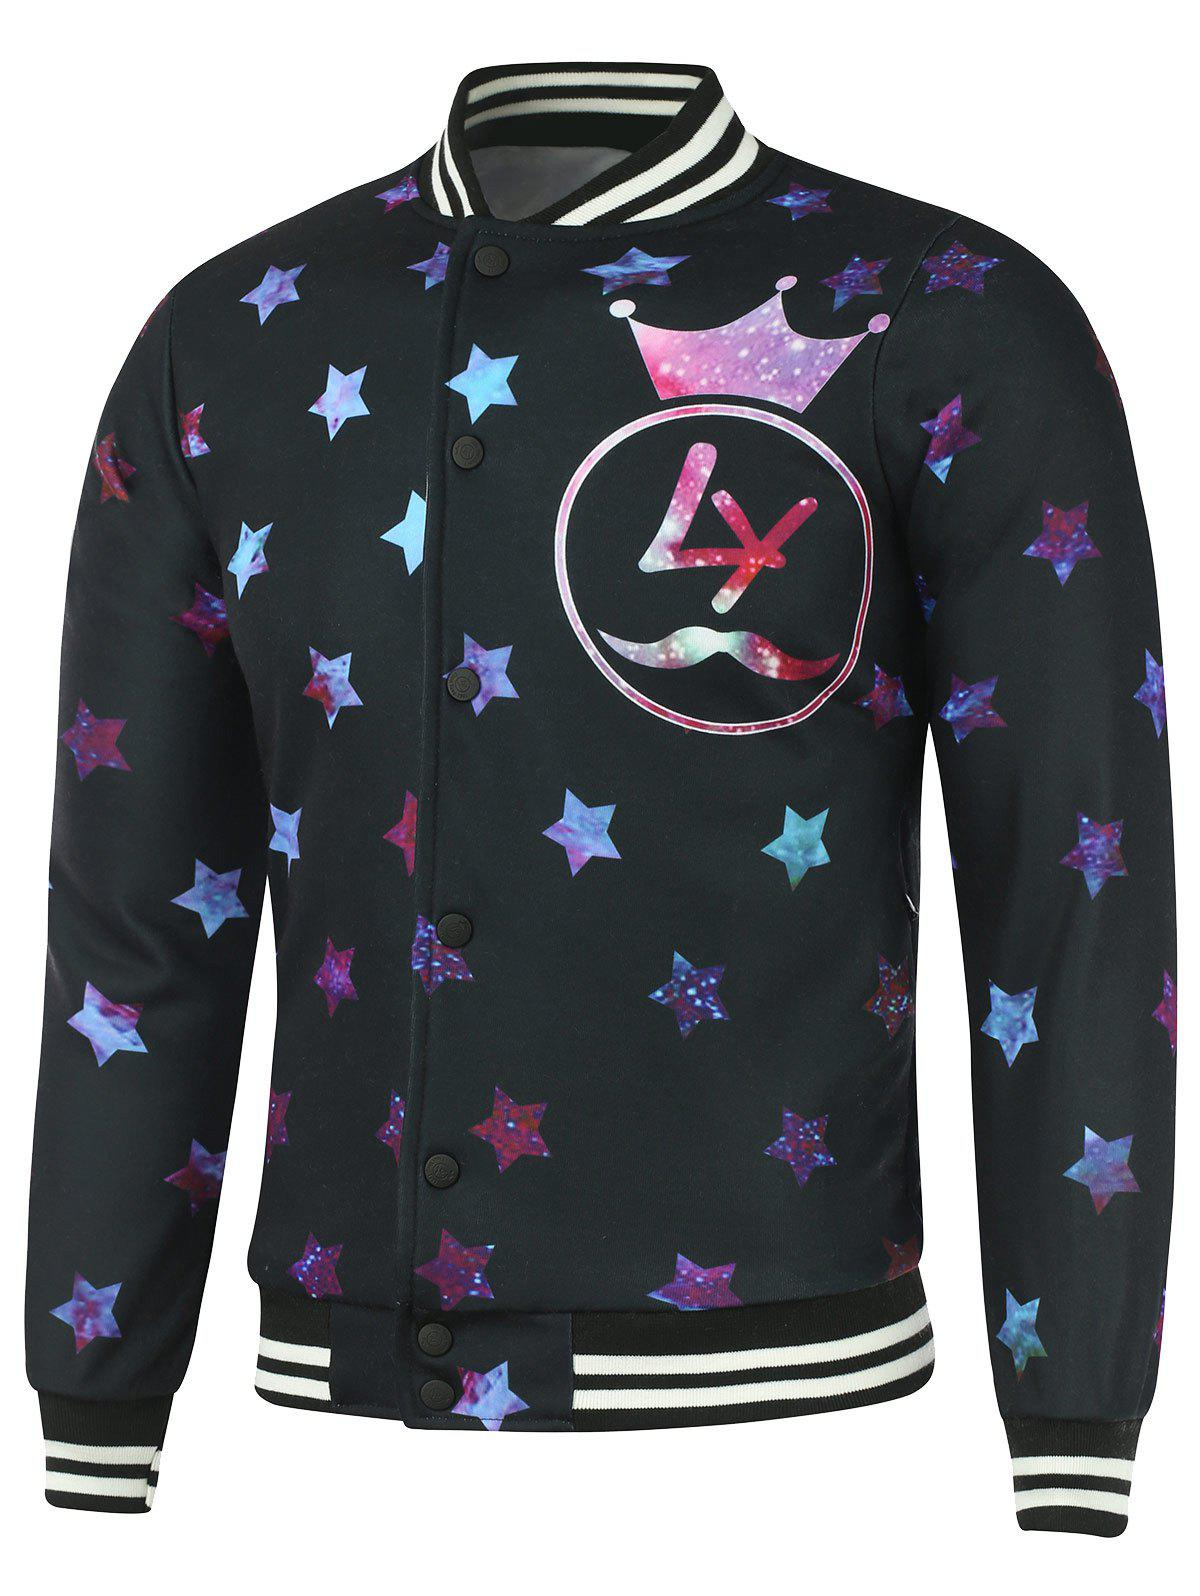 Starry Star and Graphic Print Plus Size Cotton Jacket